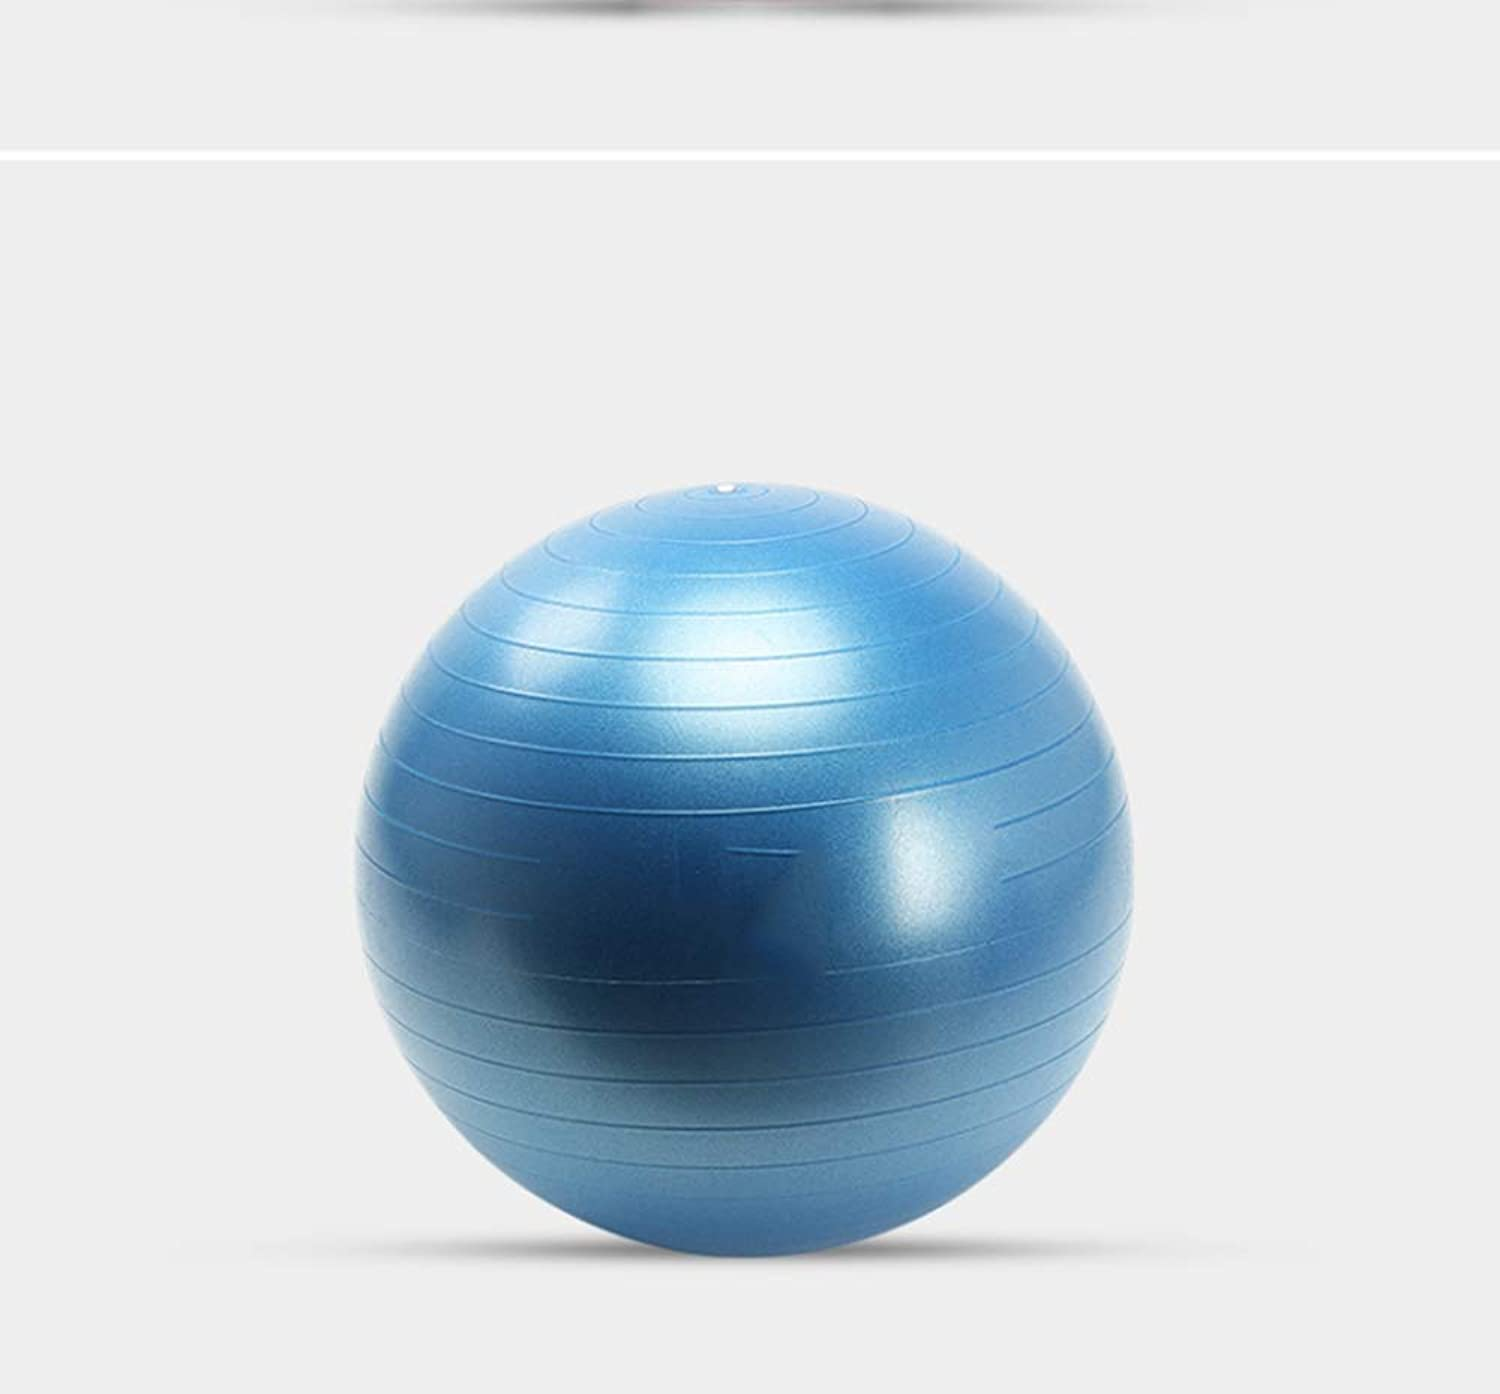 Pregnant Women Yoga Ball Guide Music Delivery Special Midwifery Ball Fitness Equipment Ladies Home,Green,65Cm